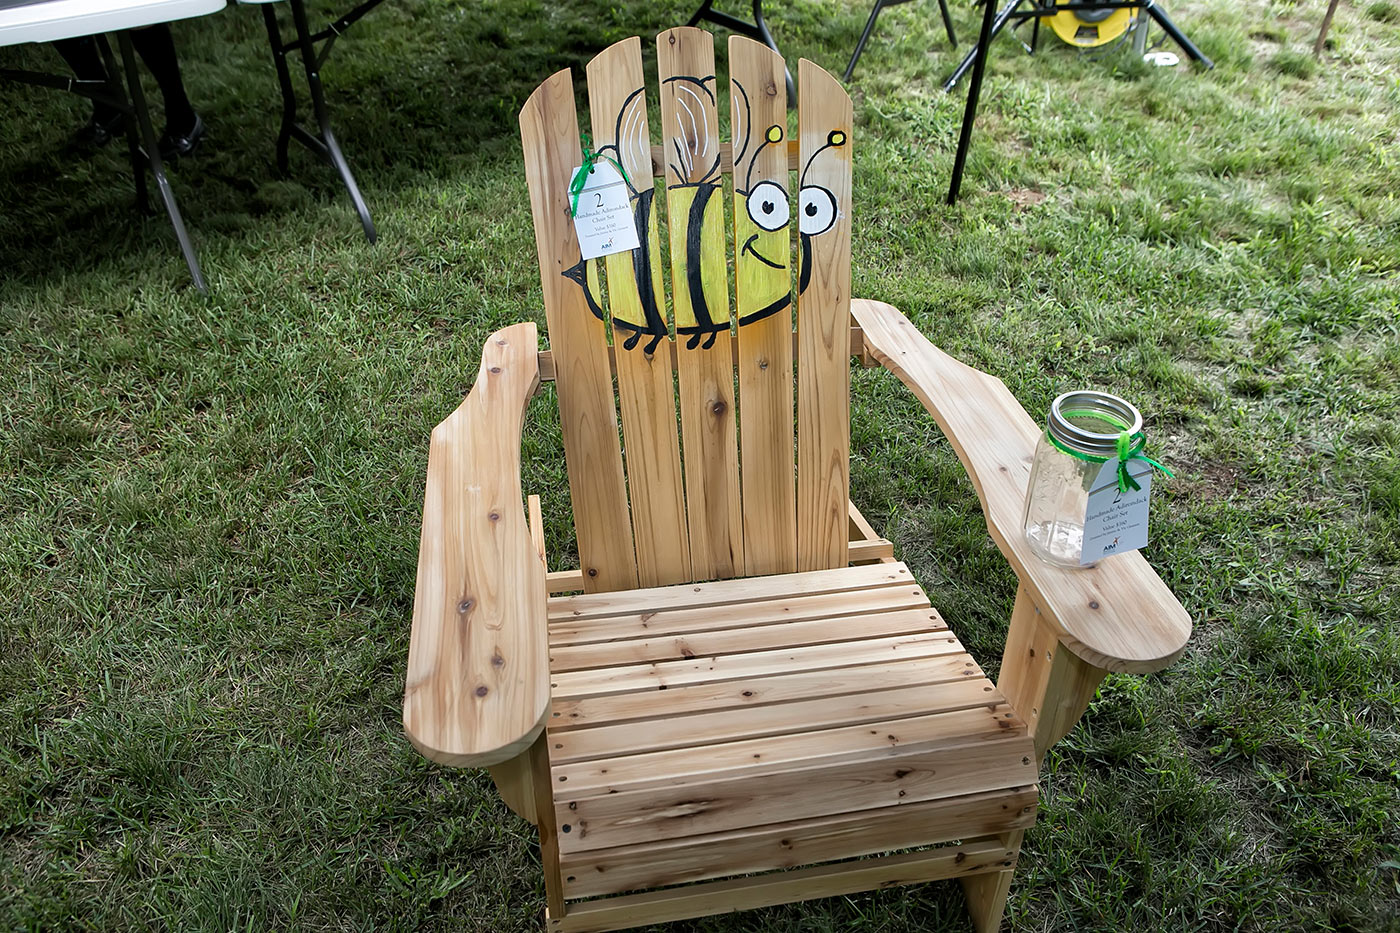 adirondack chair with bumble bee